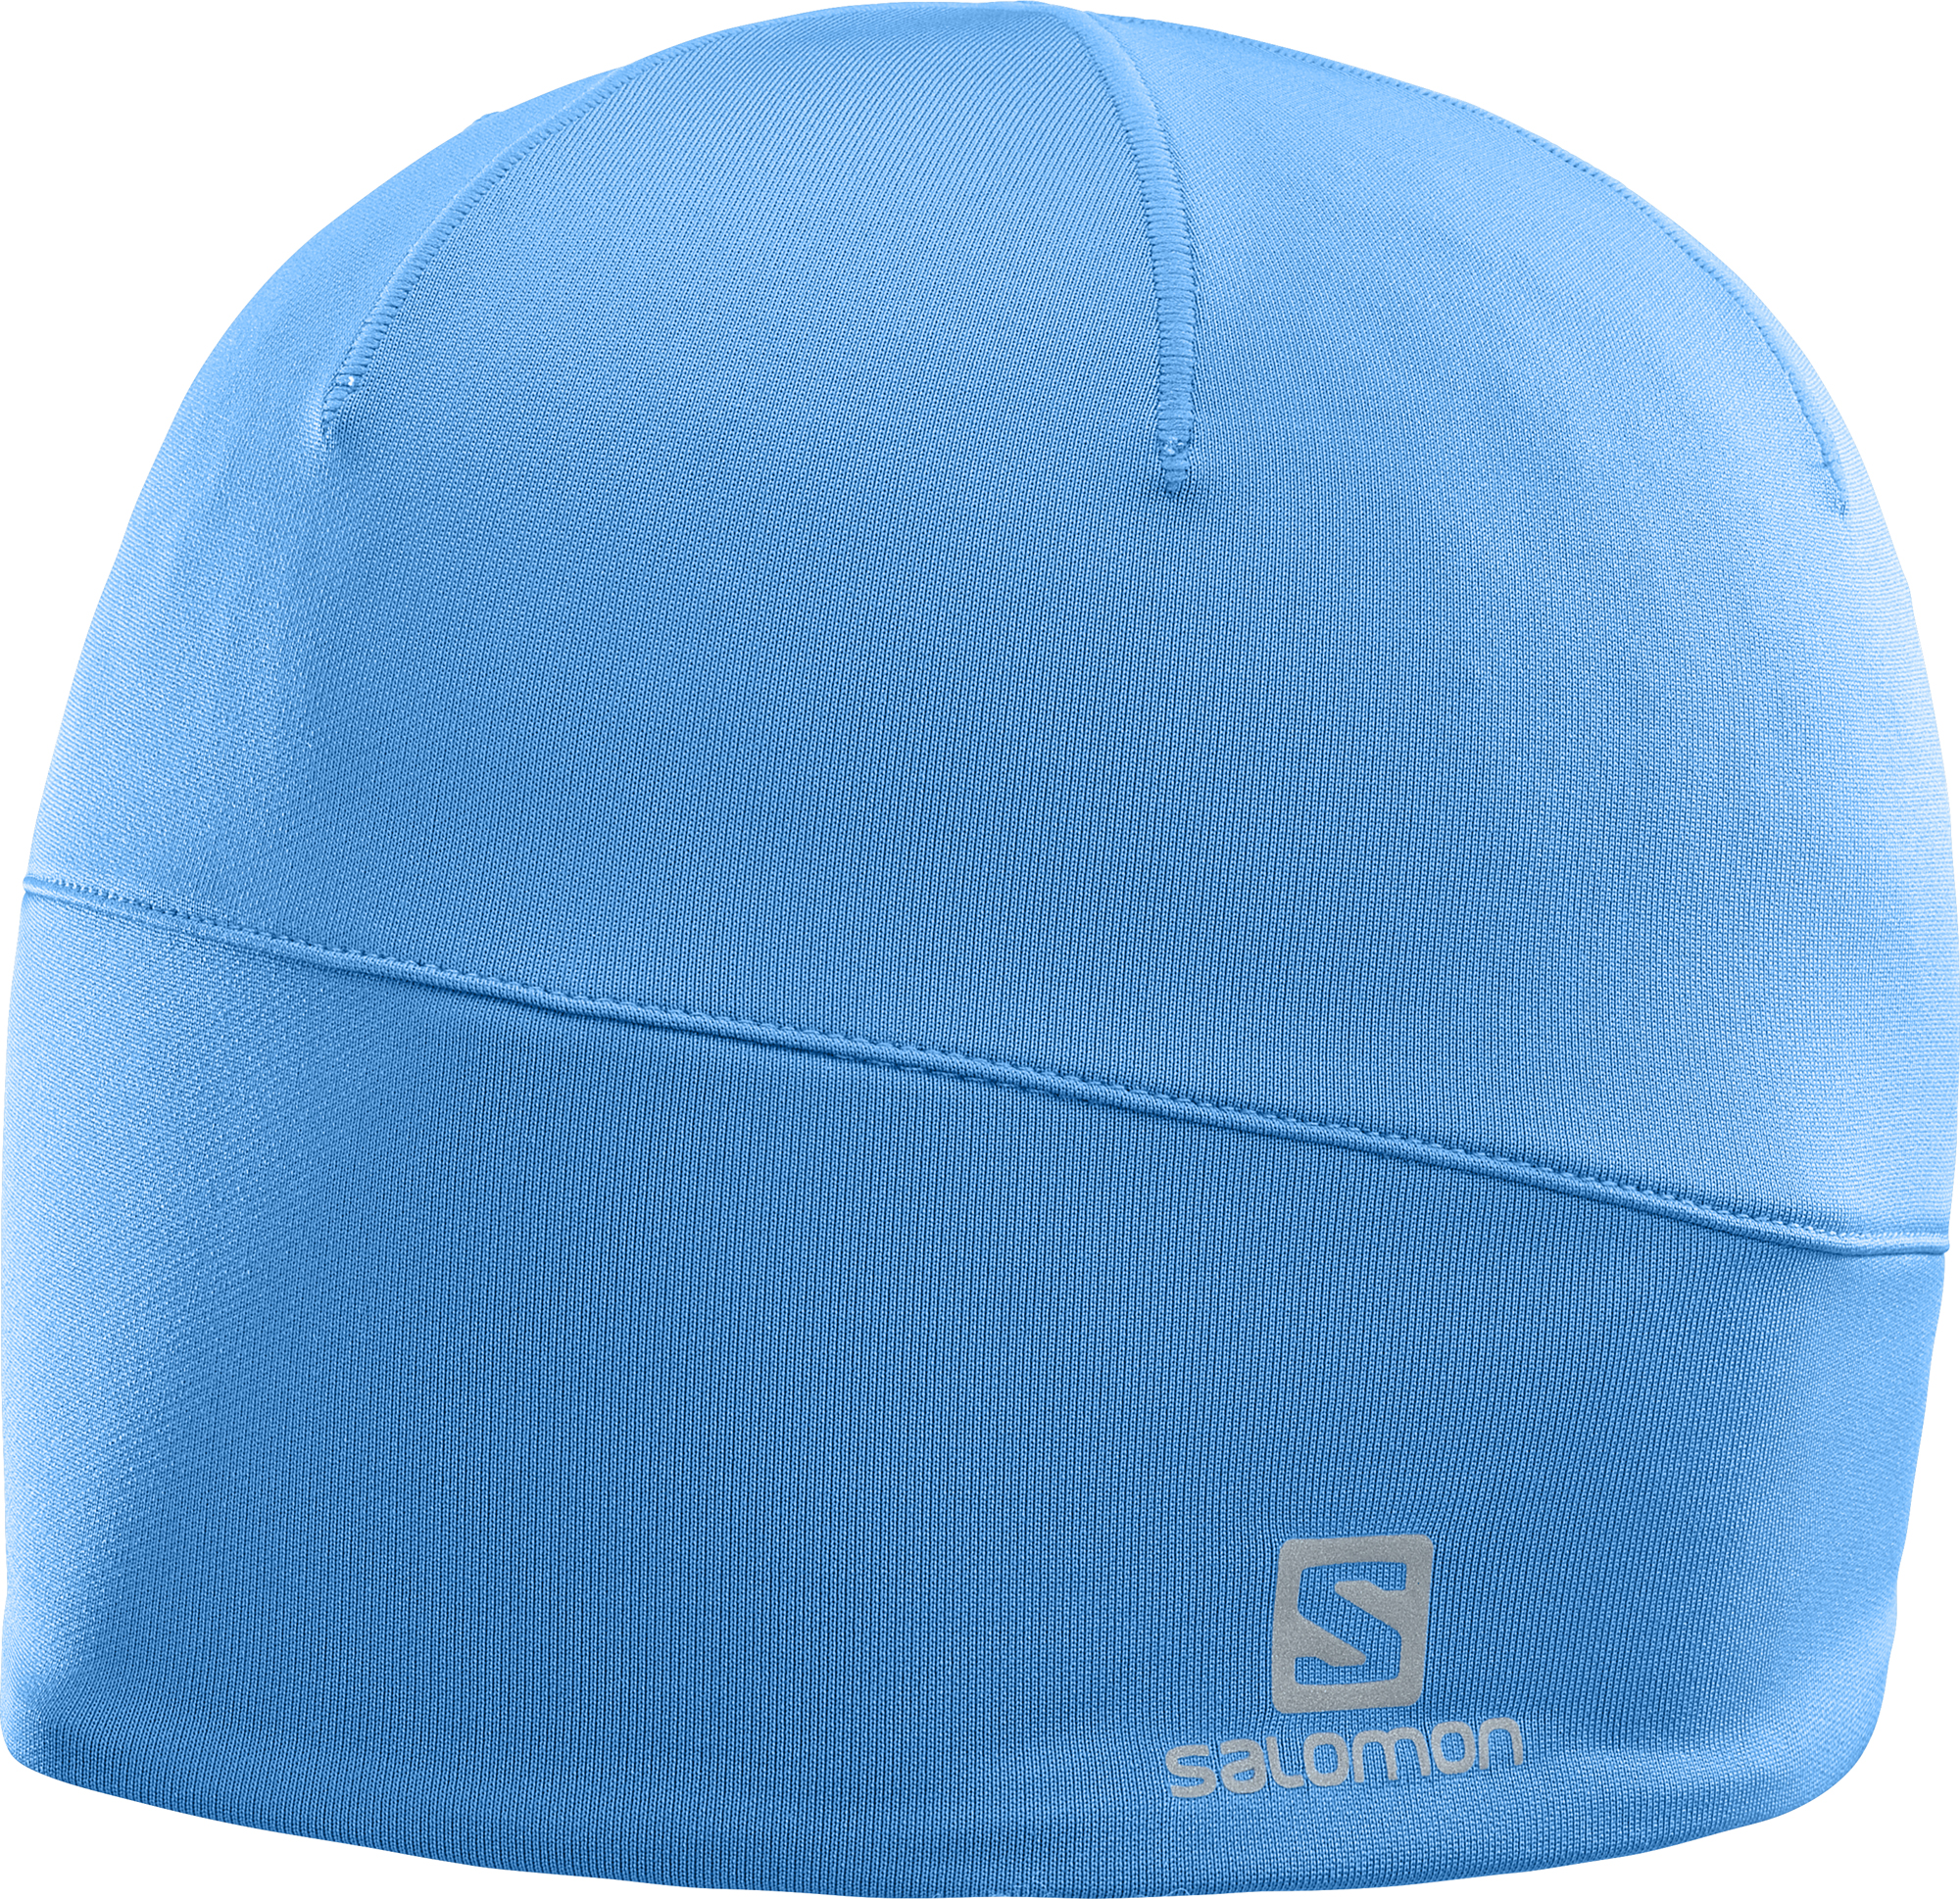 SALOMON ACTIVE BEANIE Hawaian Surf